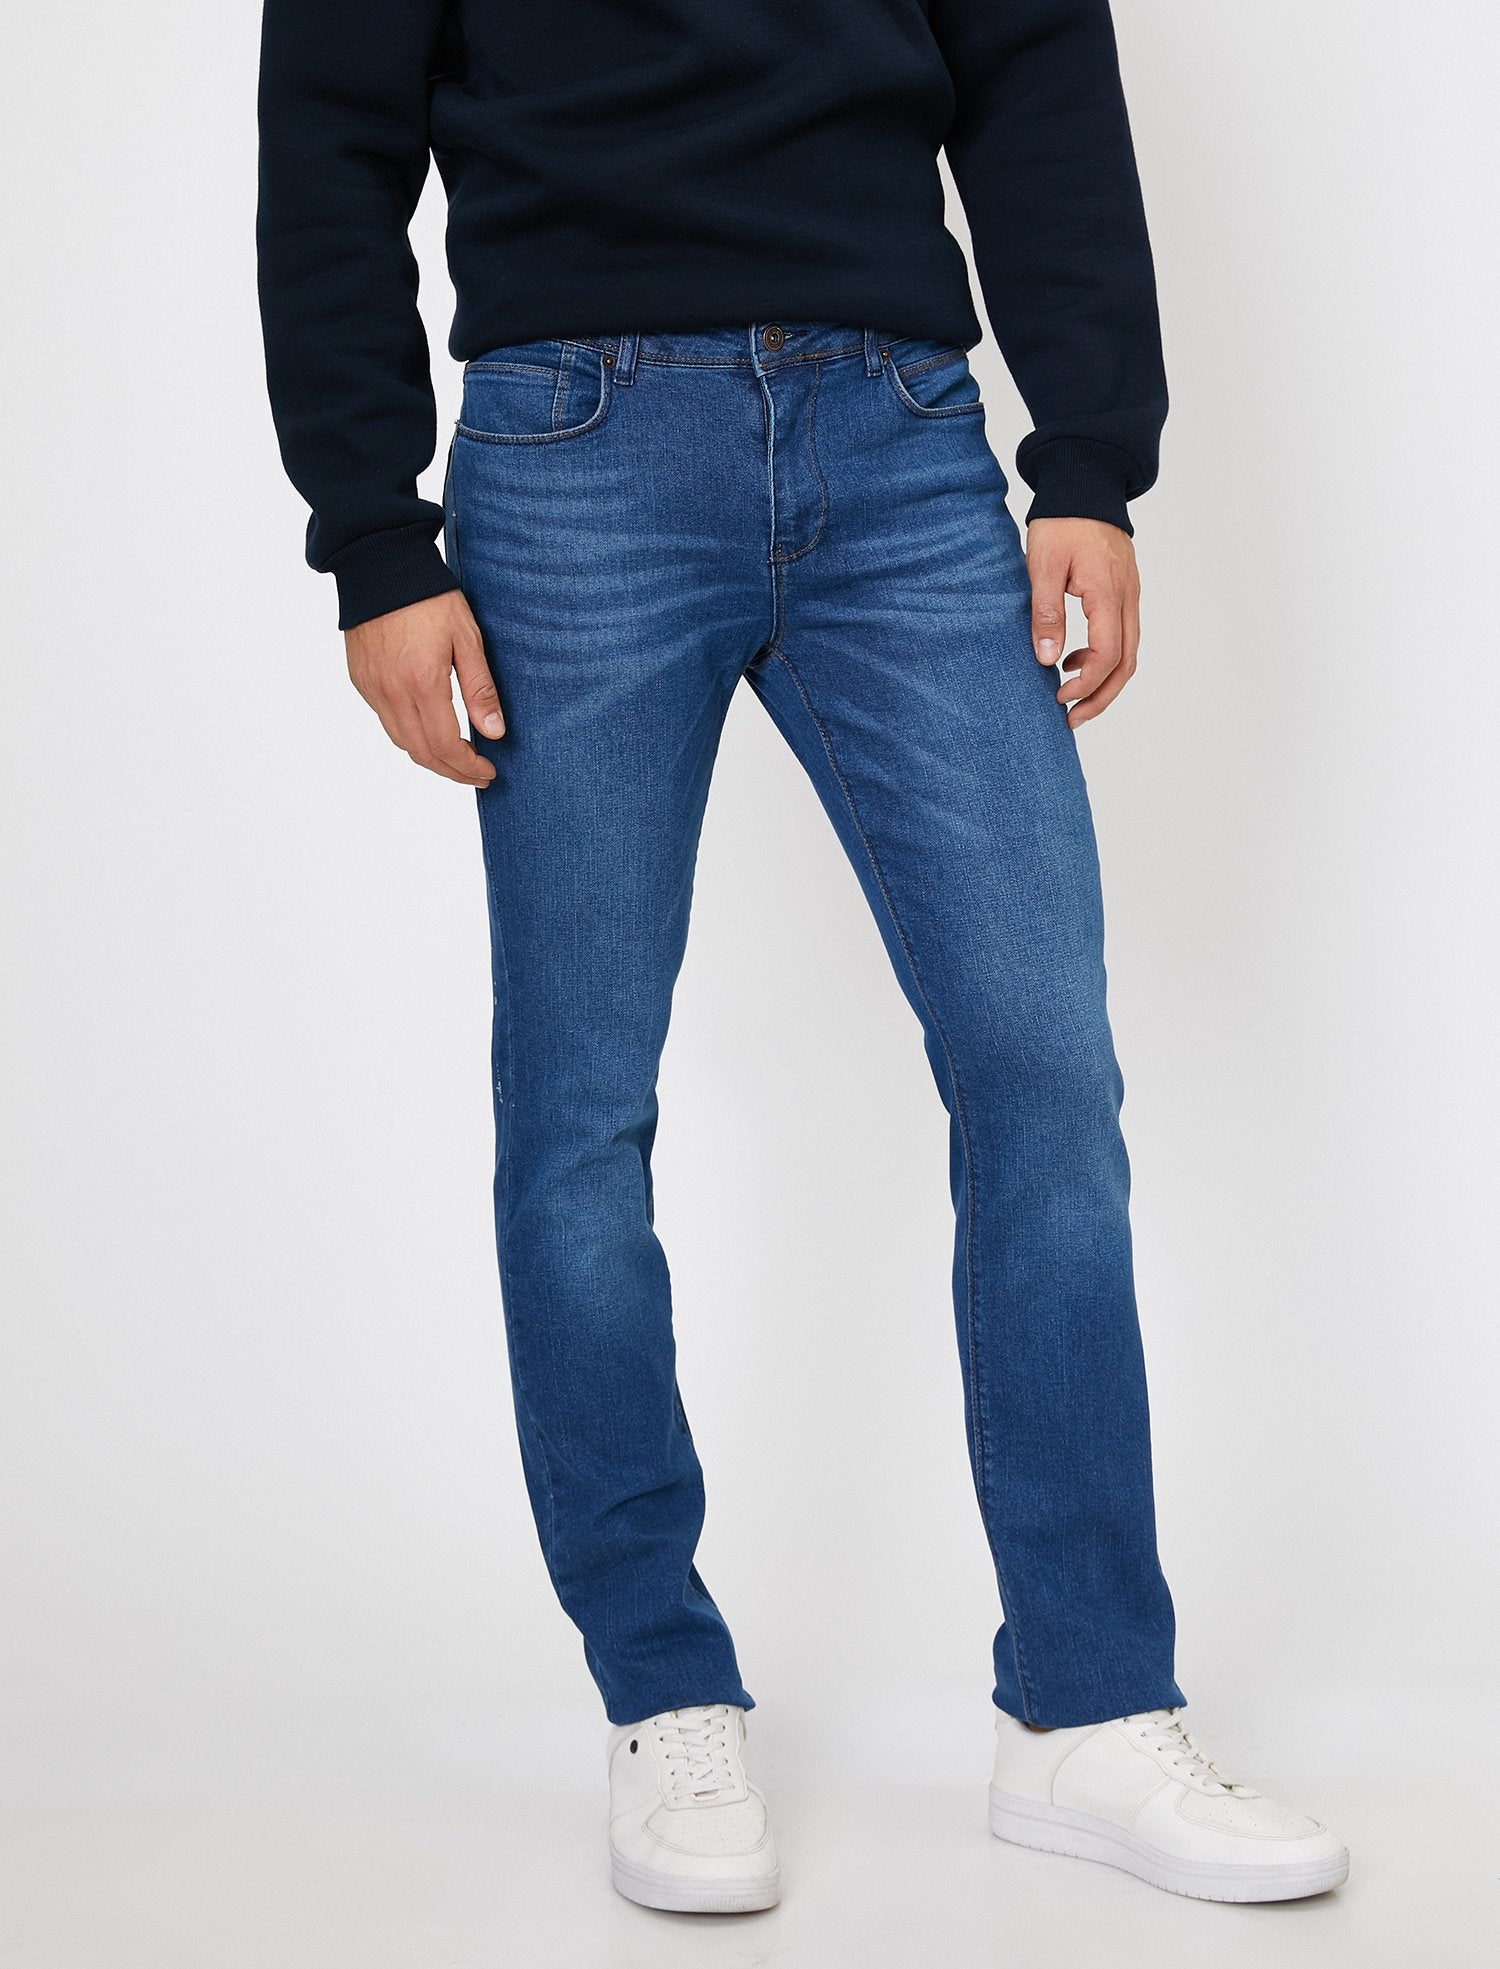 Slim Fit Brad Jeans in Medium Wash